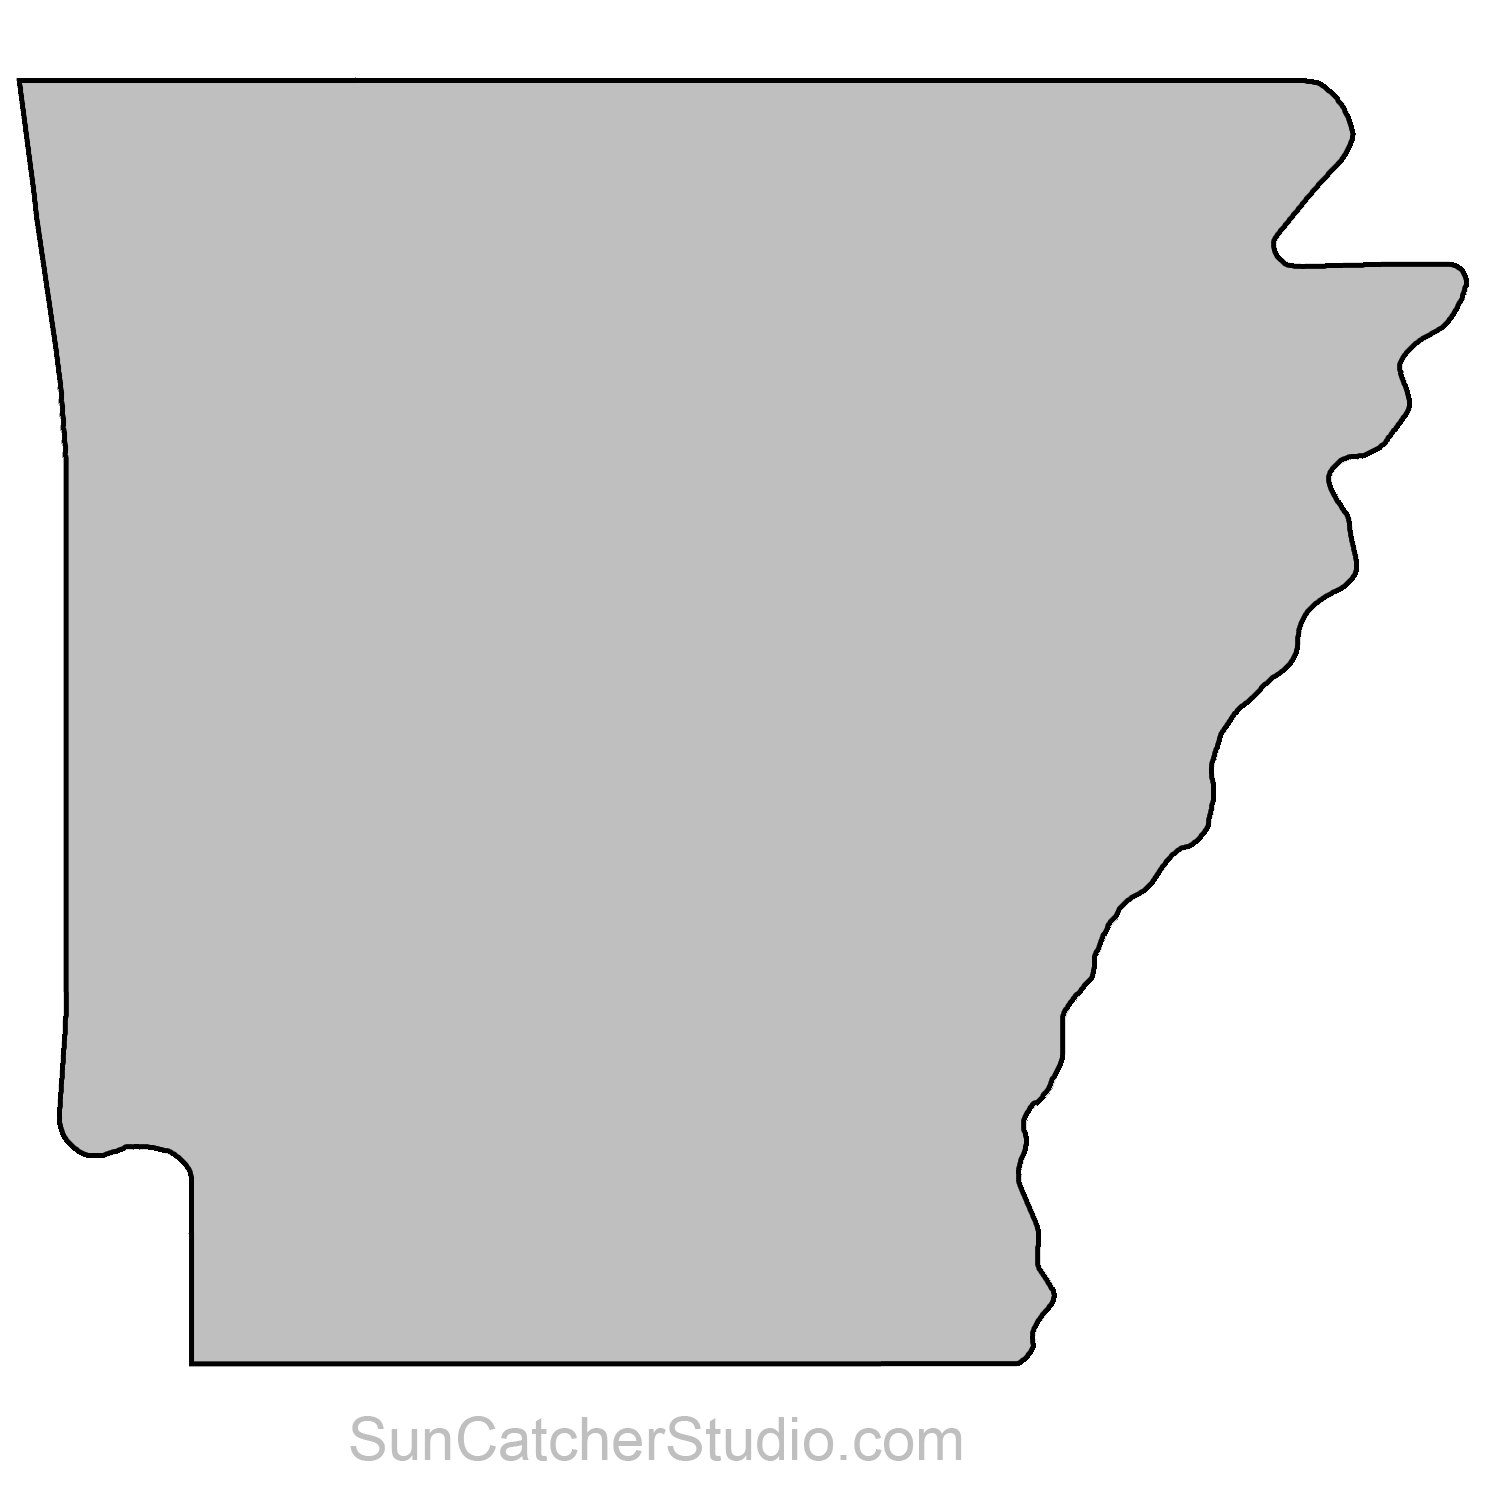 State Outlines Maps Stencils Patterns Clip Art All 50 States State Crafts Map Outline State Outline